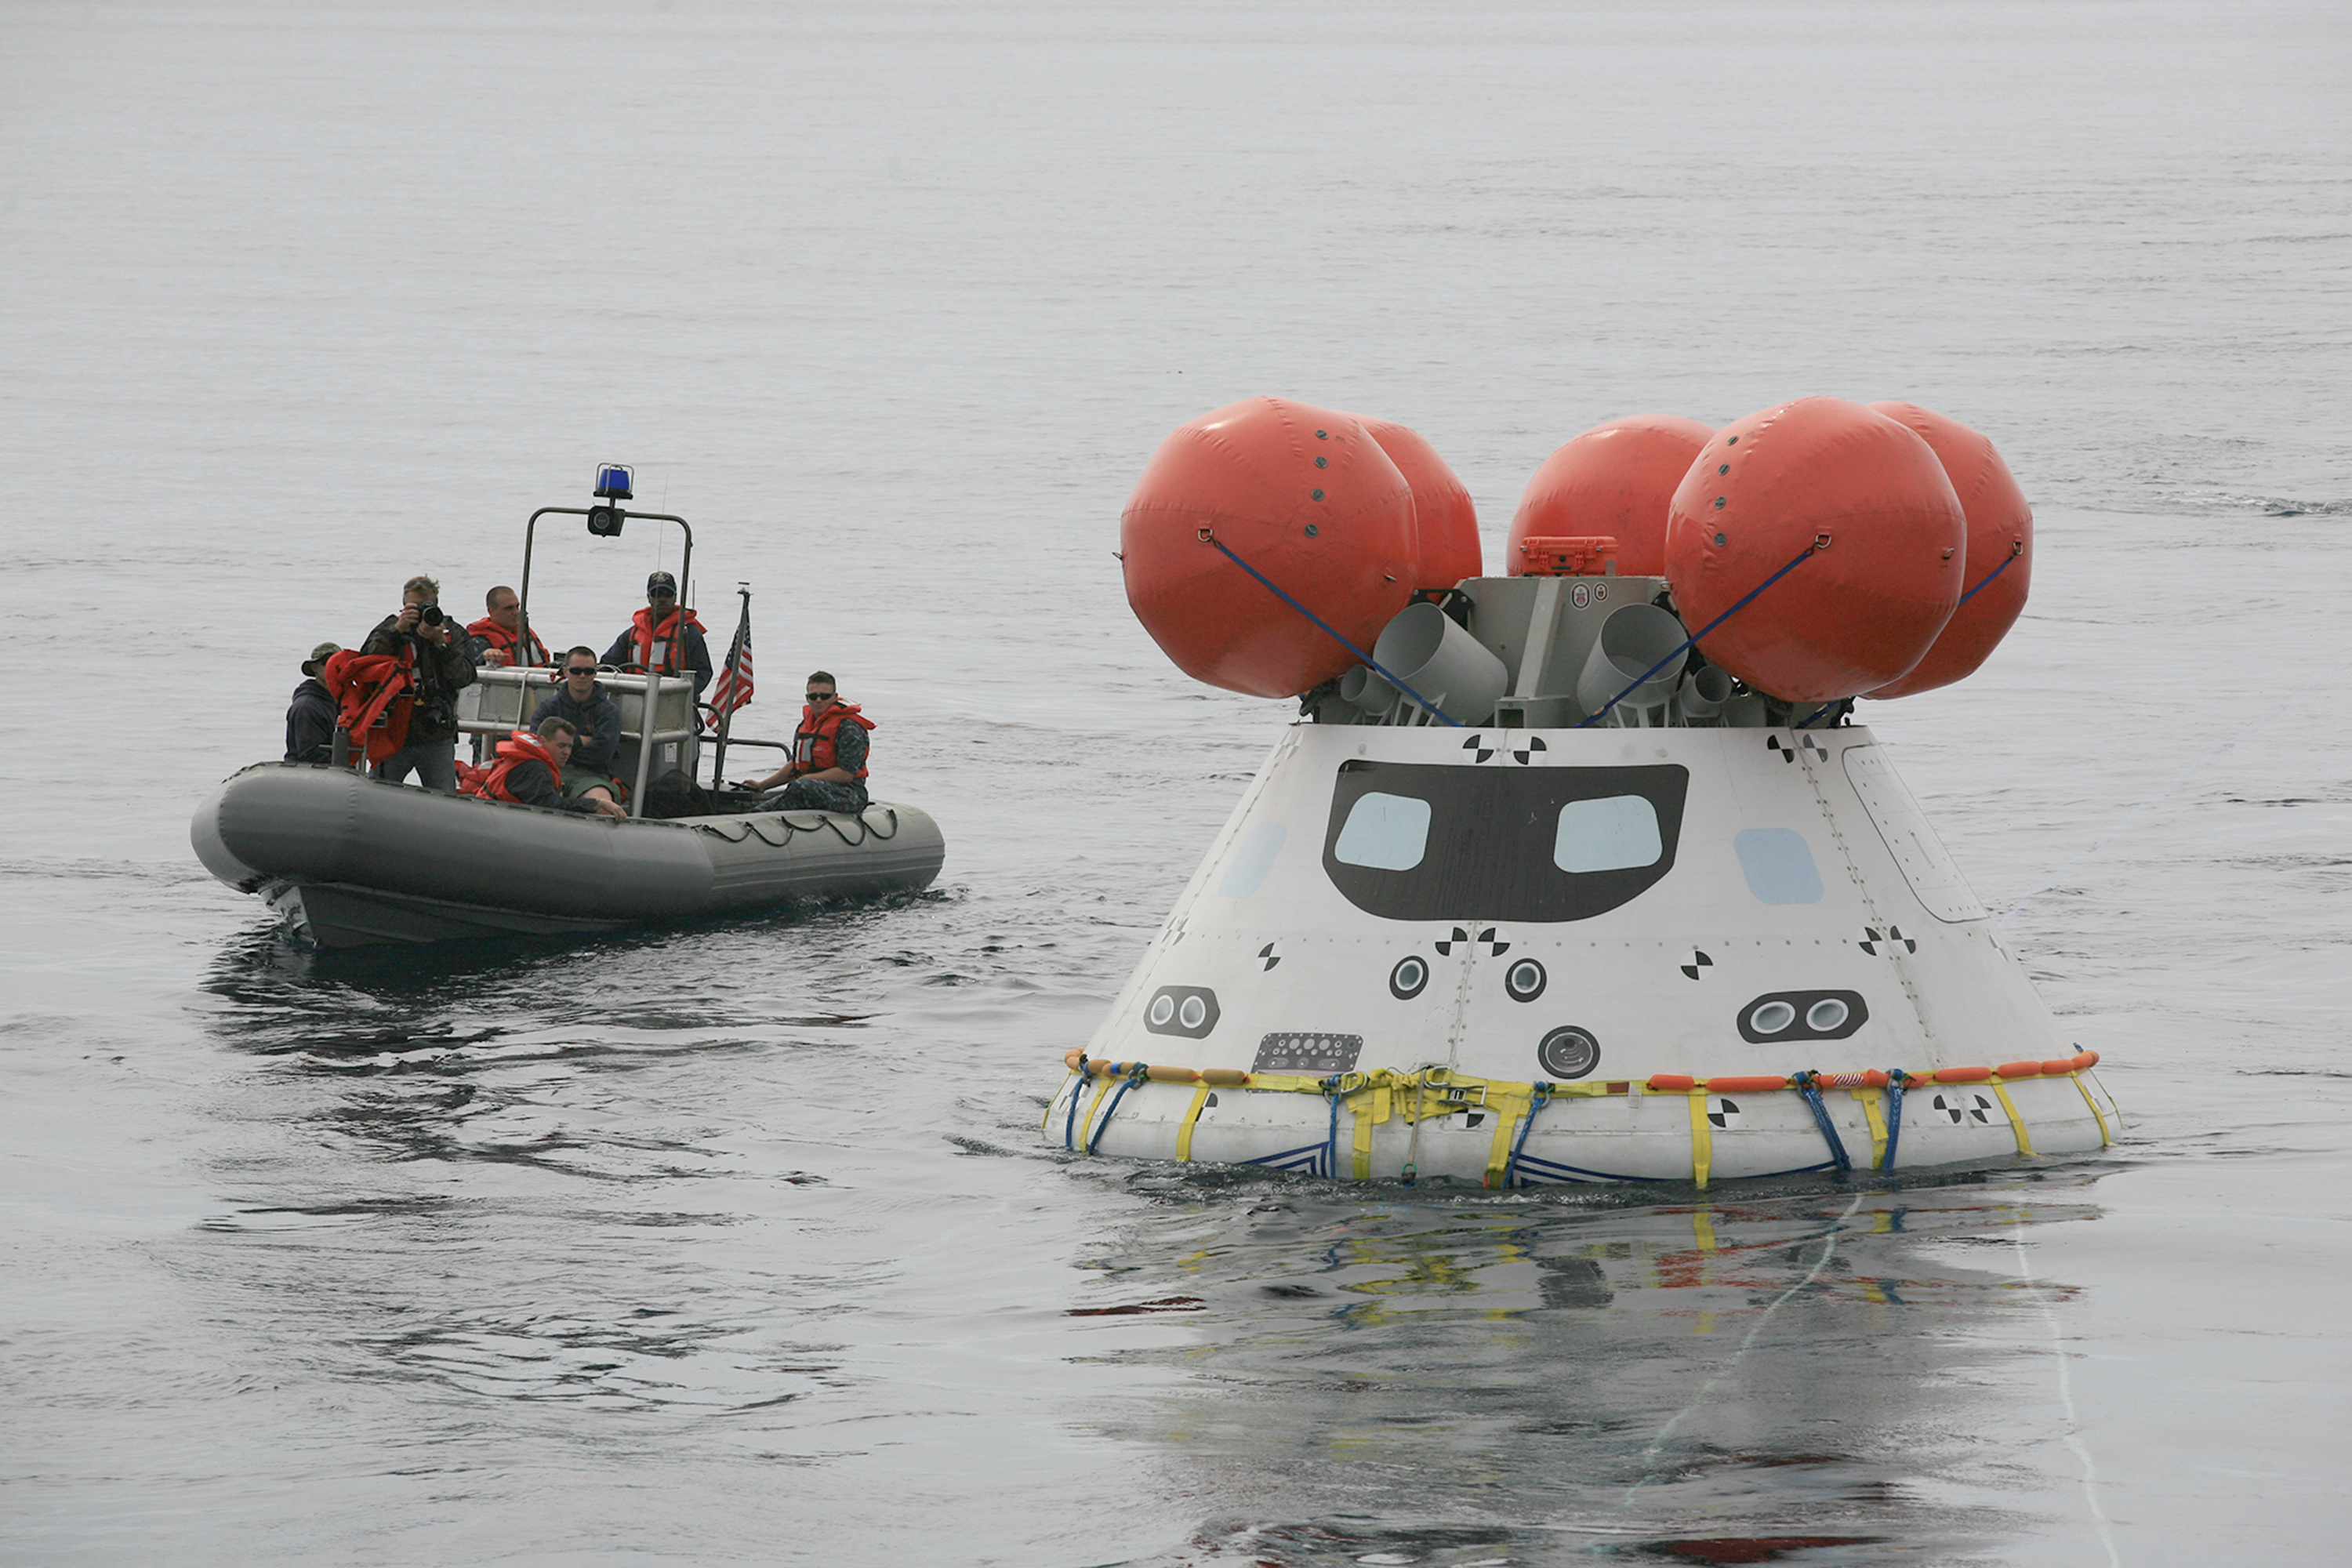 NASA's New Orion Spaceship Makes a Splash in Ocean Tests